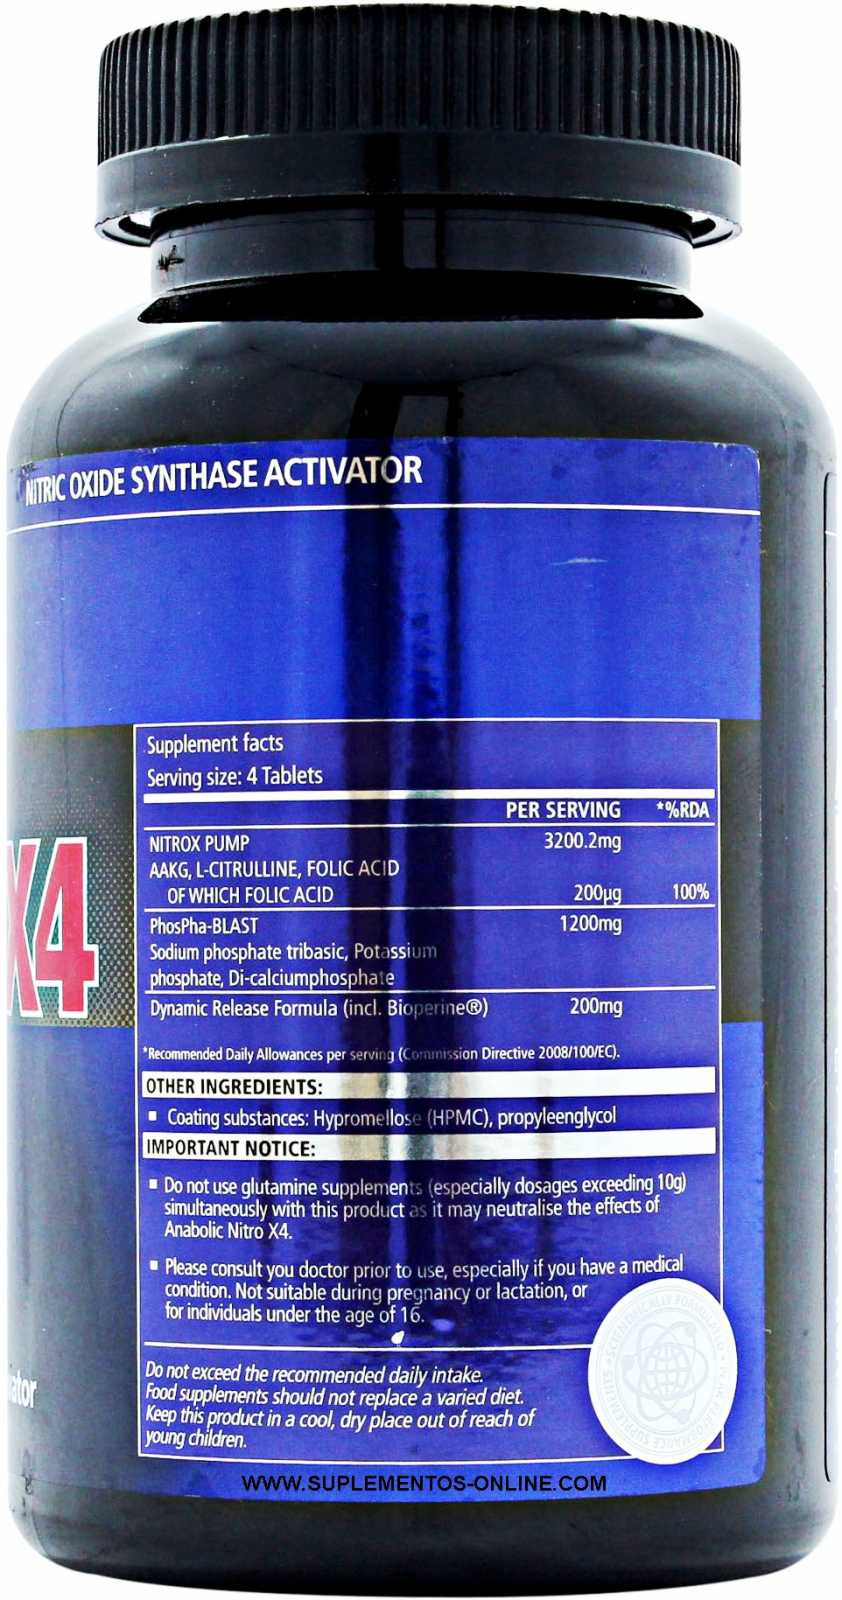 usn anabolic nitro x ingredients